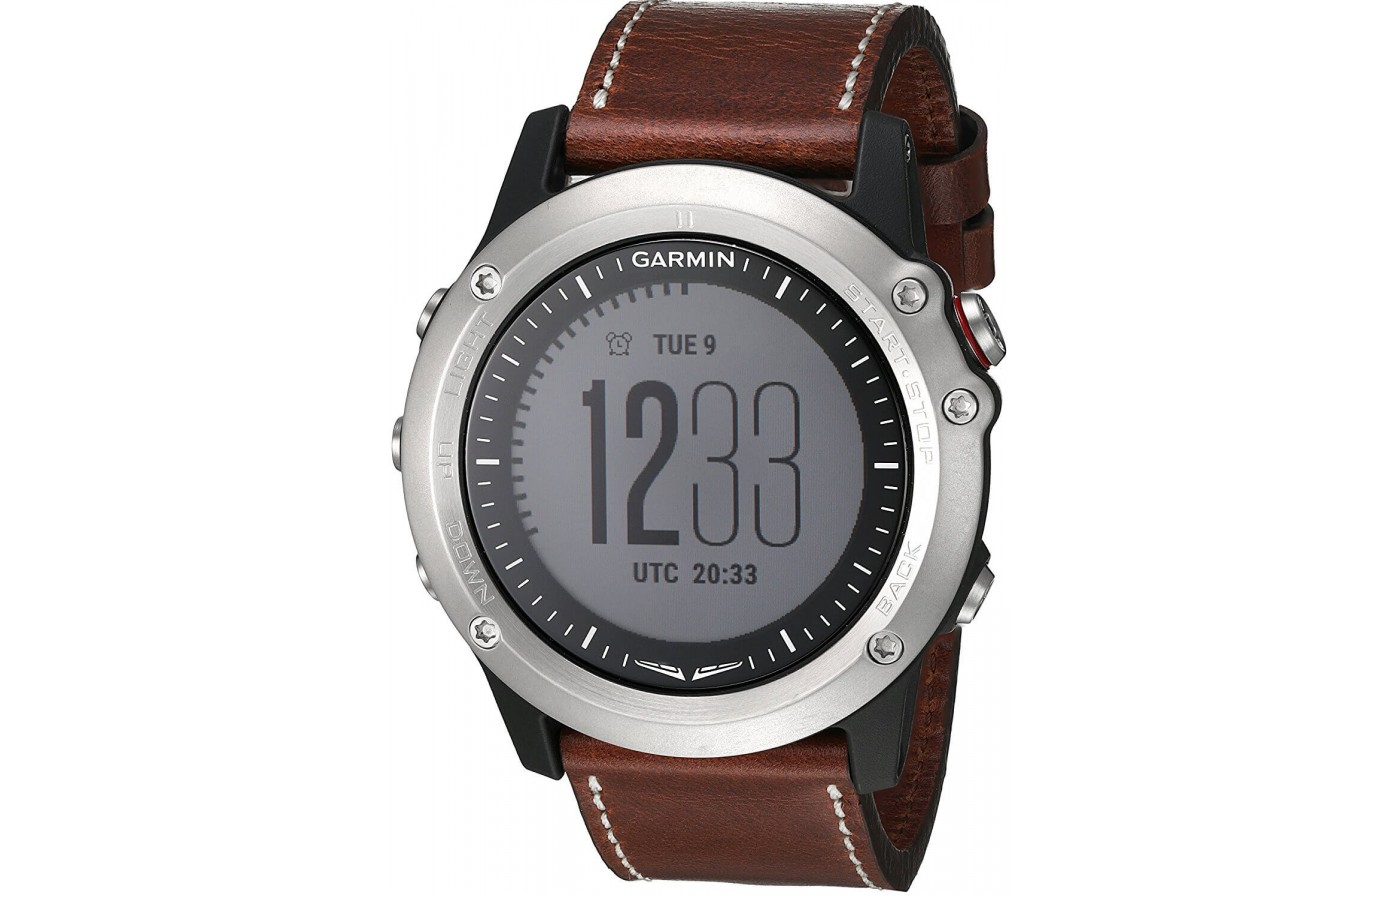 The Garmin D2 Bravo features flight-specific functions